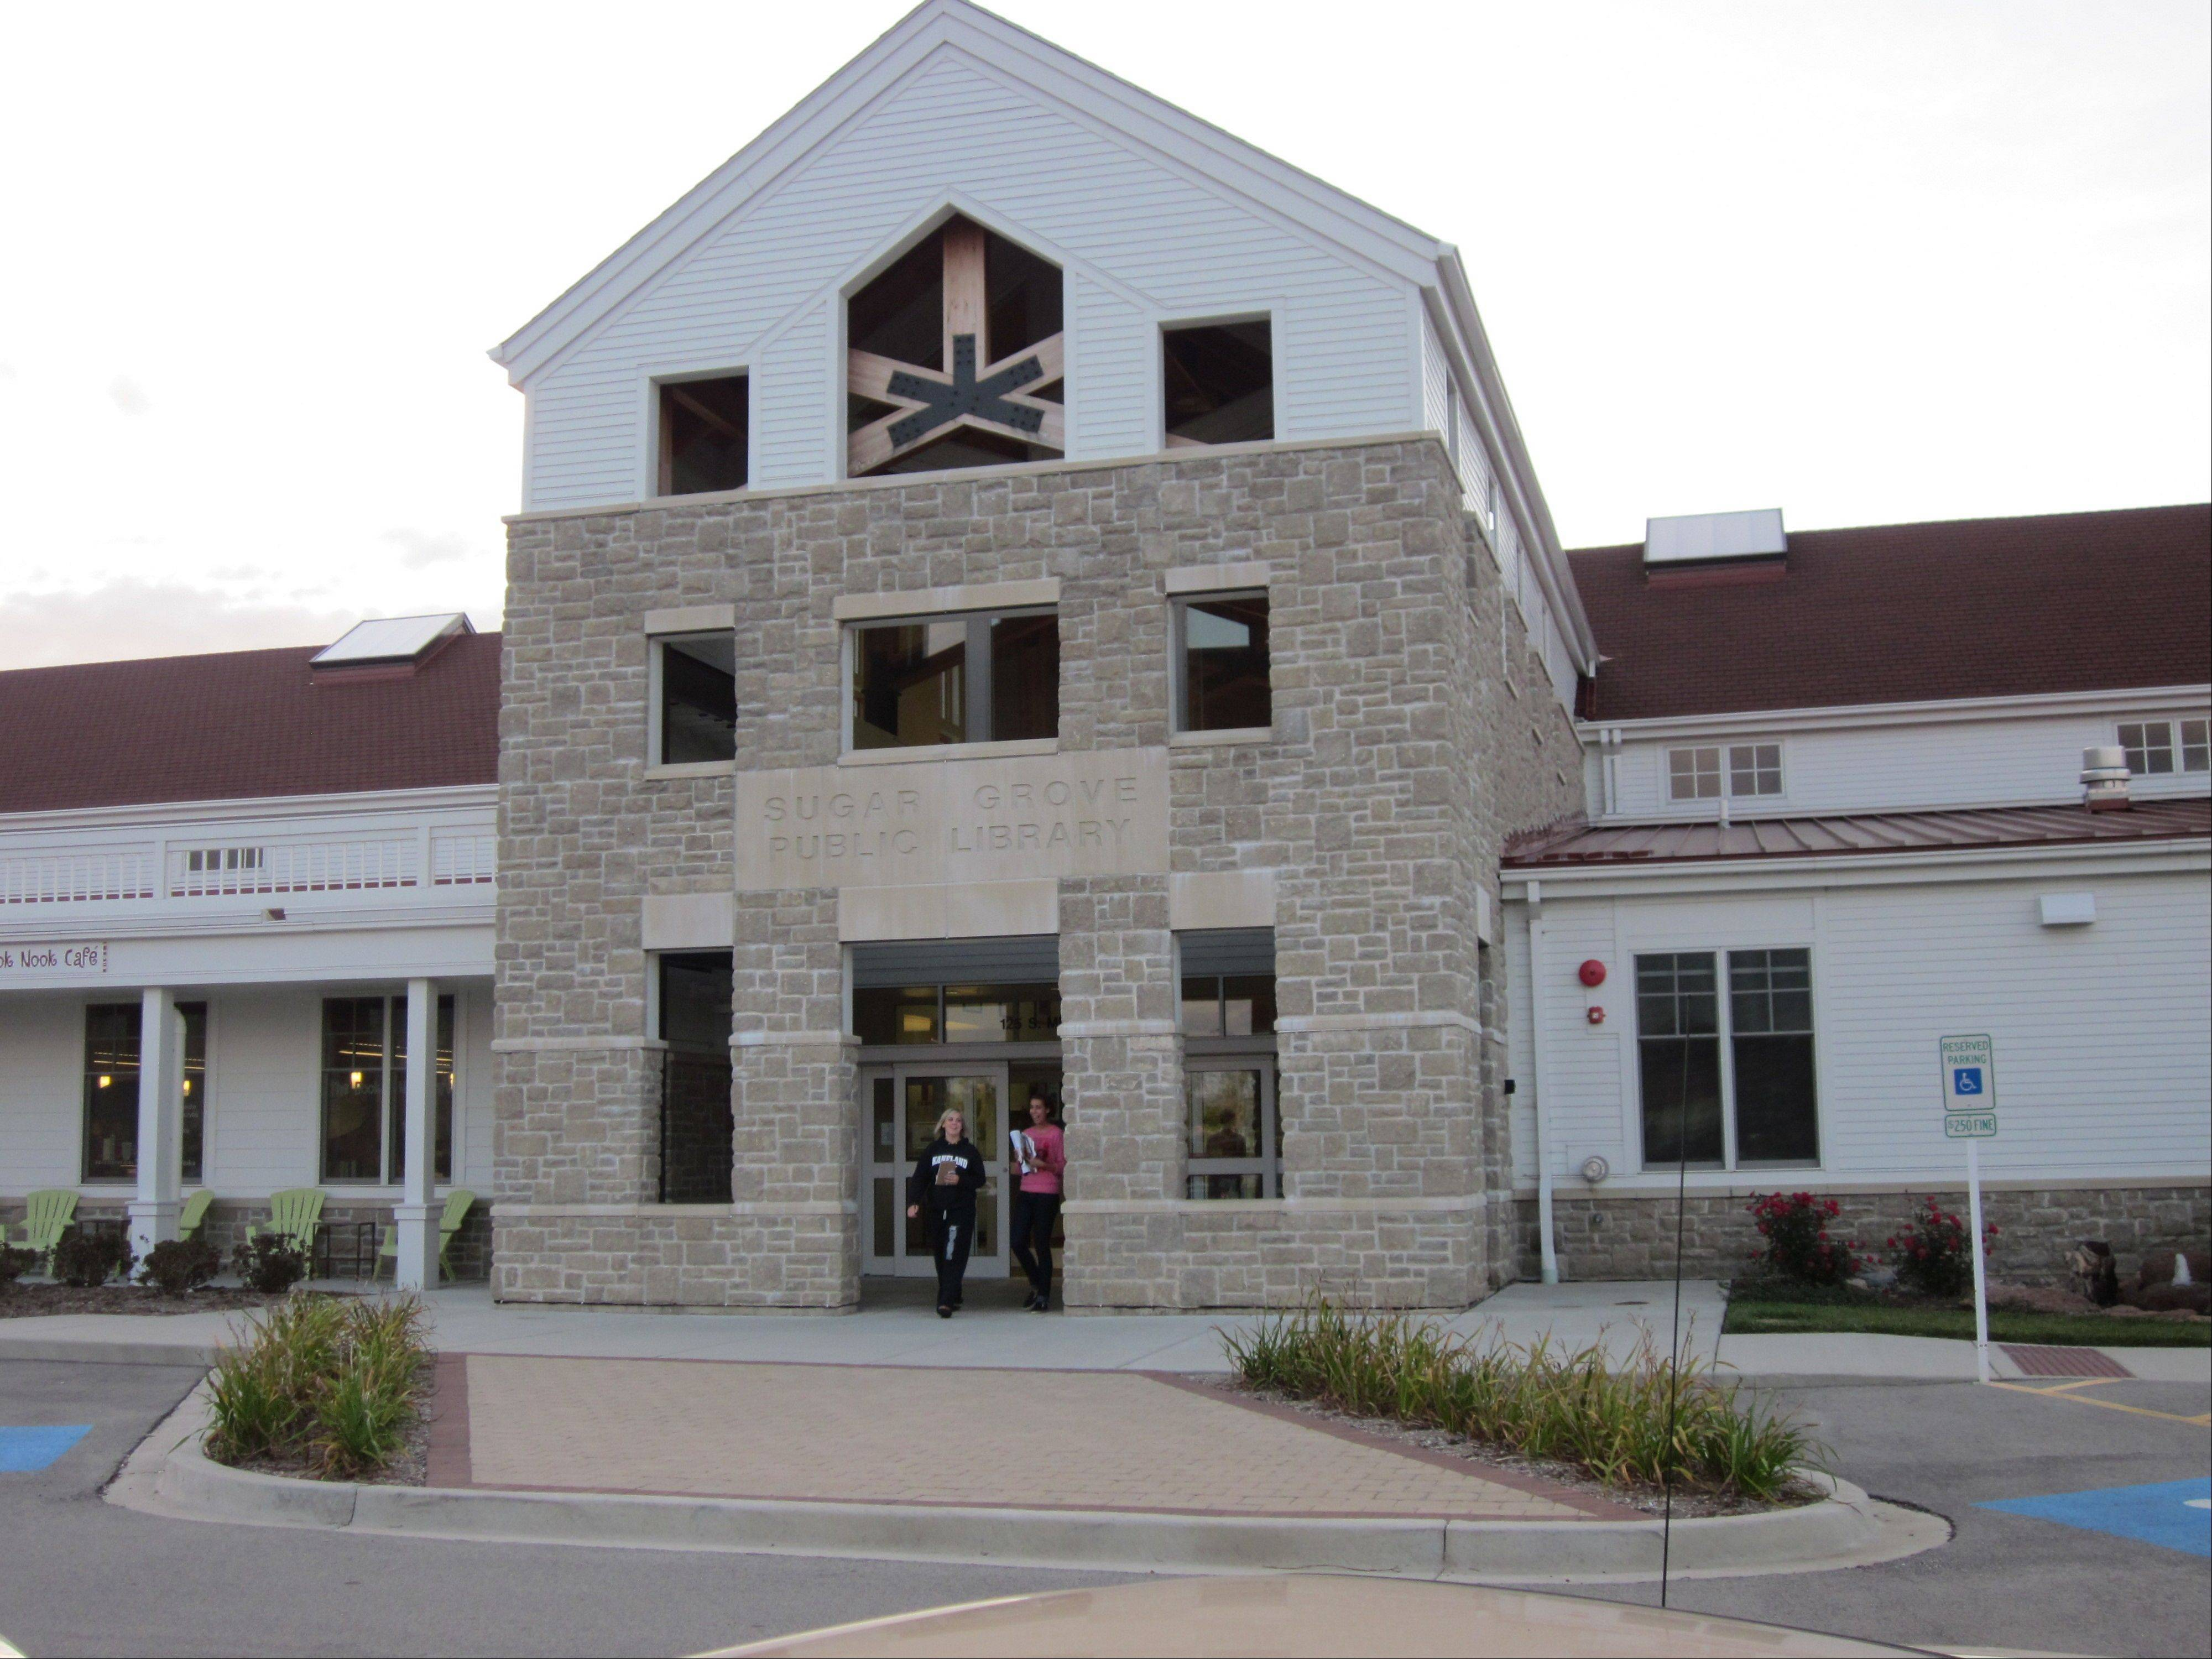 The Sugar Grove Library.